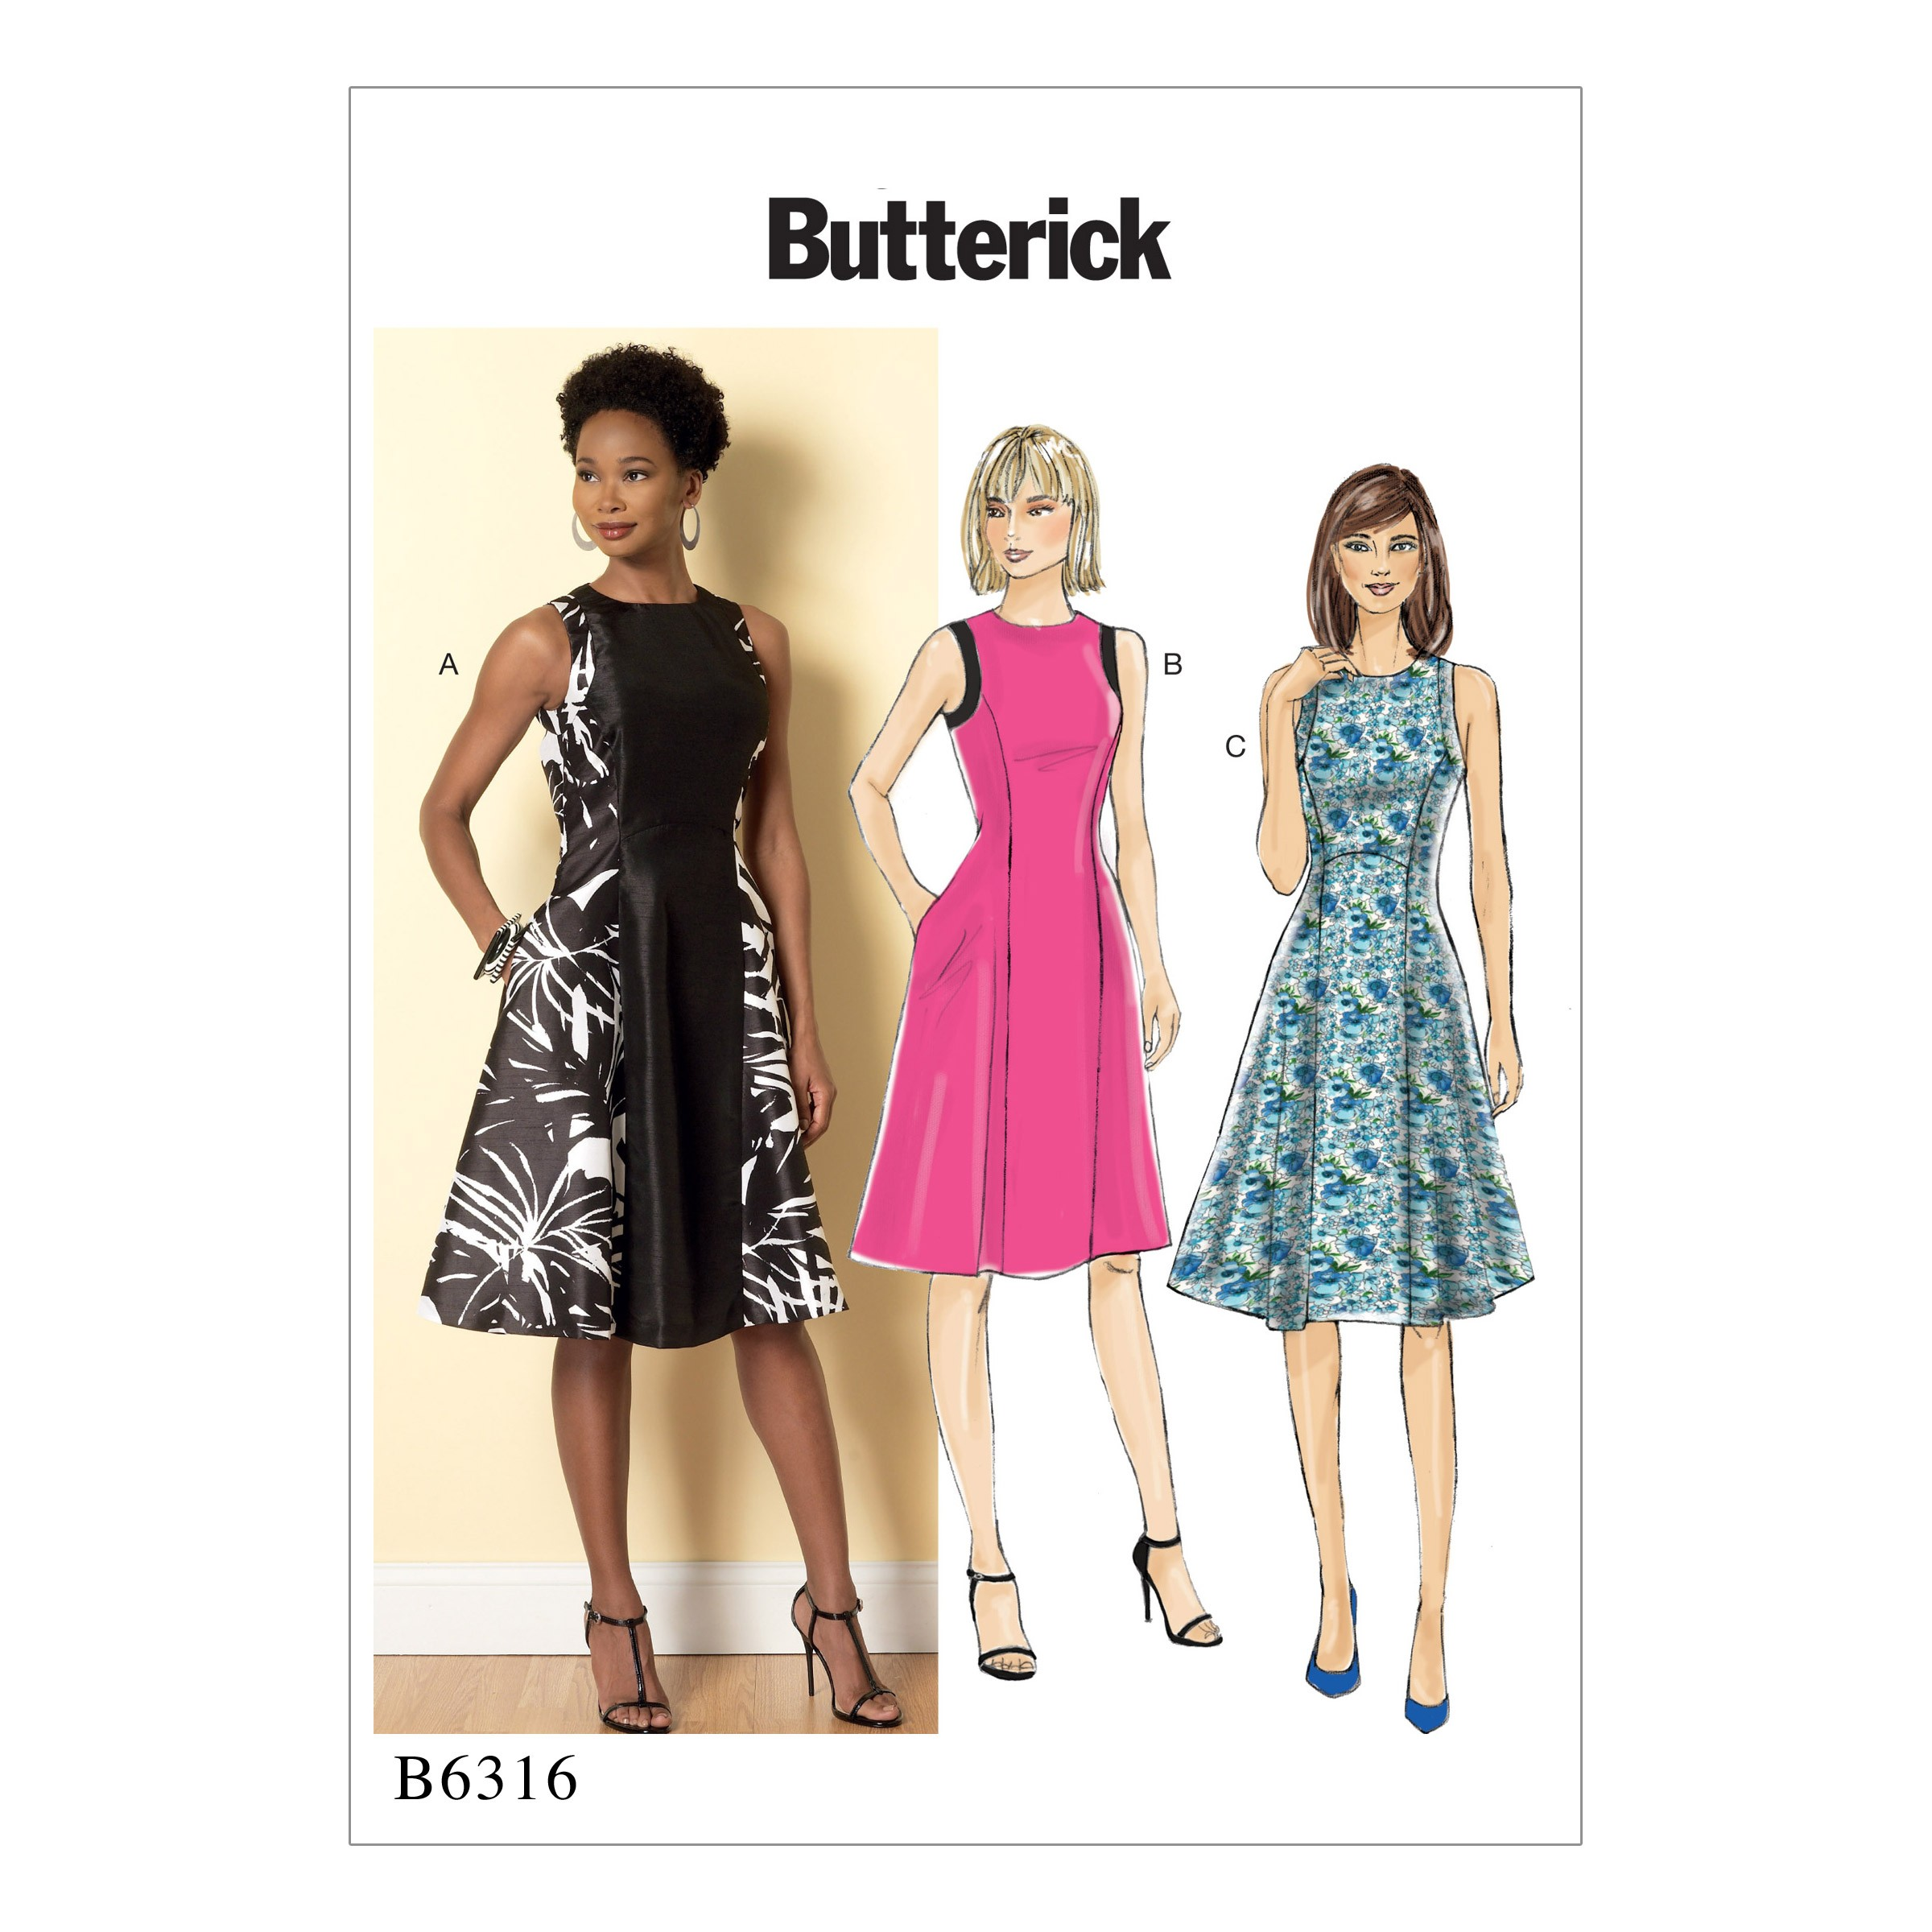 Butterick Sewing Pattern 6316 Misses' Fit & Flare Evening Dresses